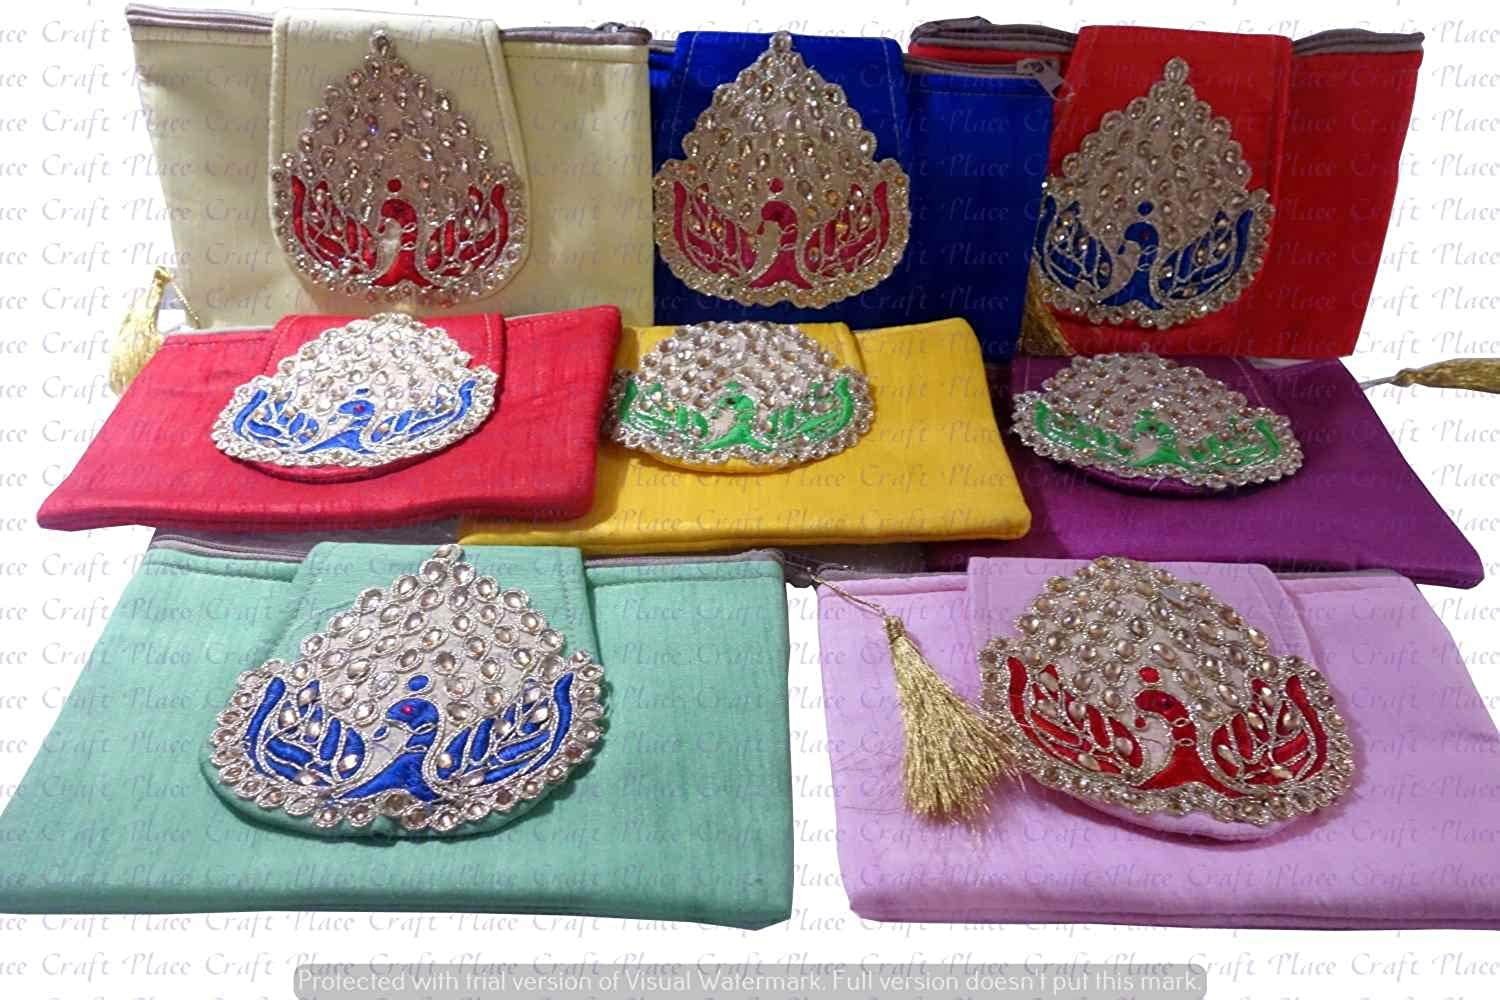 Indian Wholesale 20 pc lot Bulk Mandala Hand Bag Ethnic Clutches Purse Shoulder For Ladies by Craft Place AAB-78